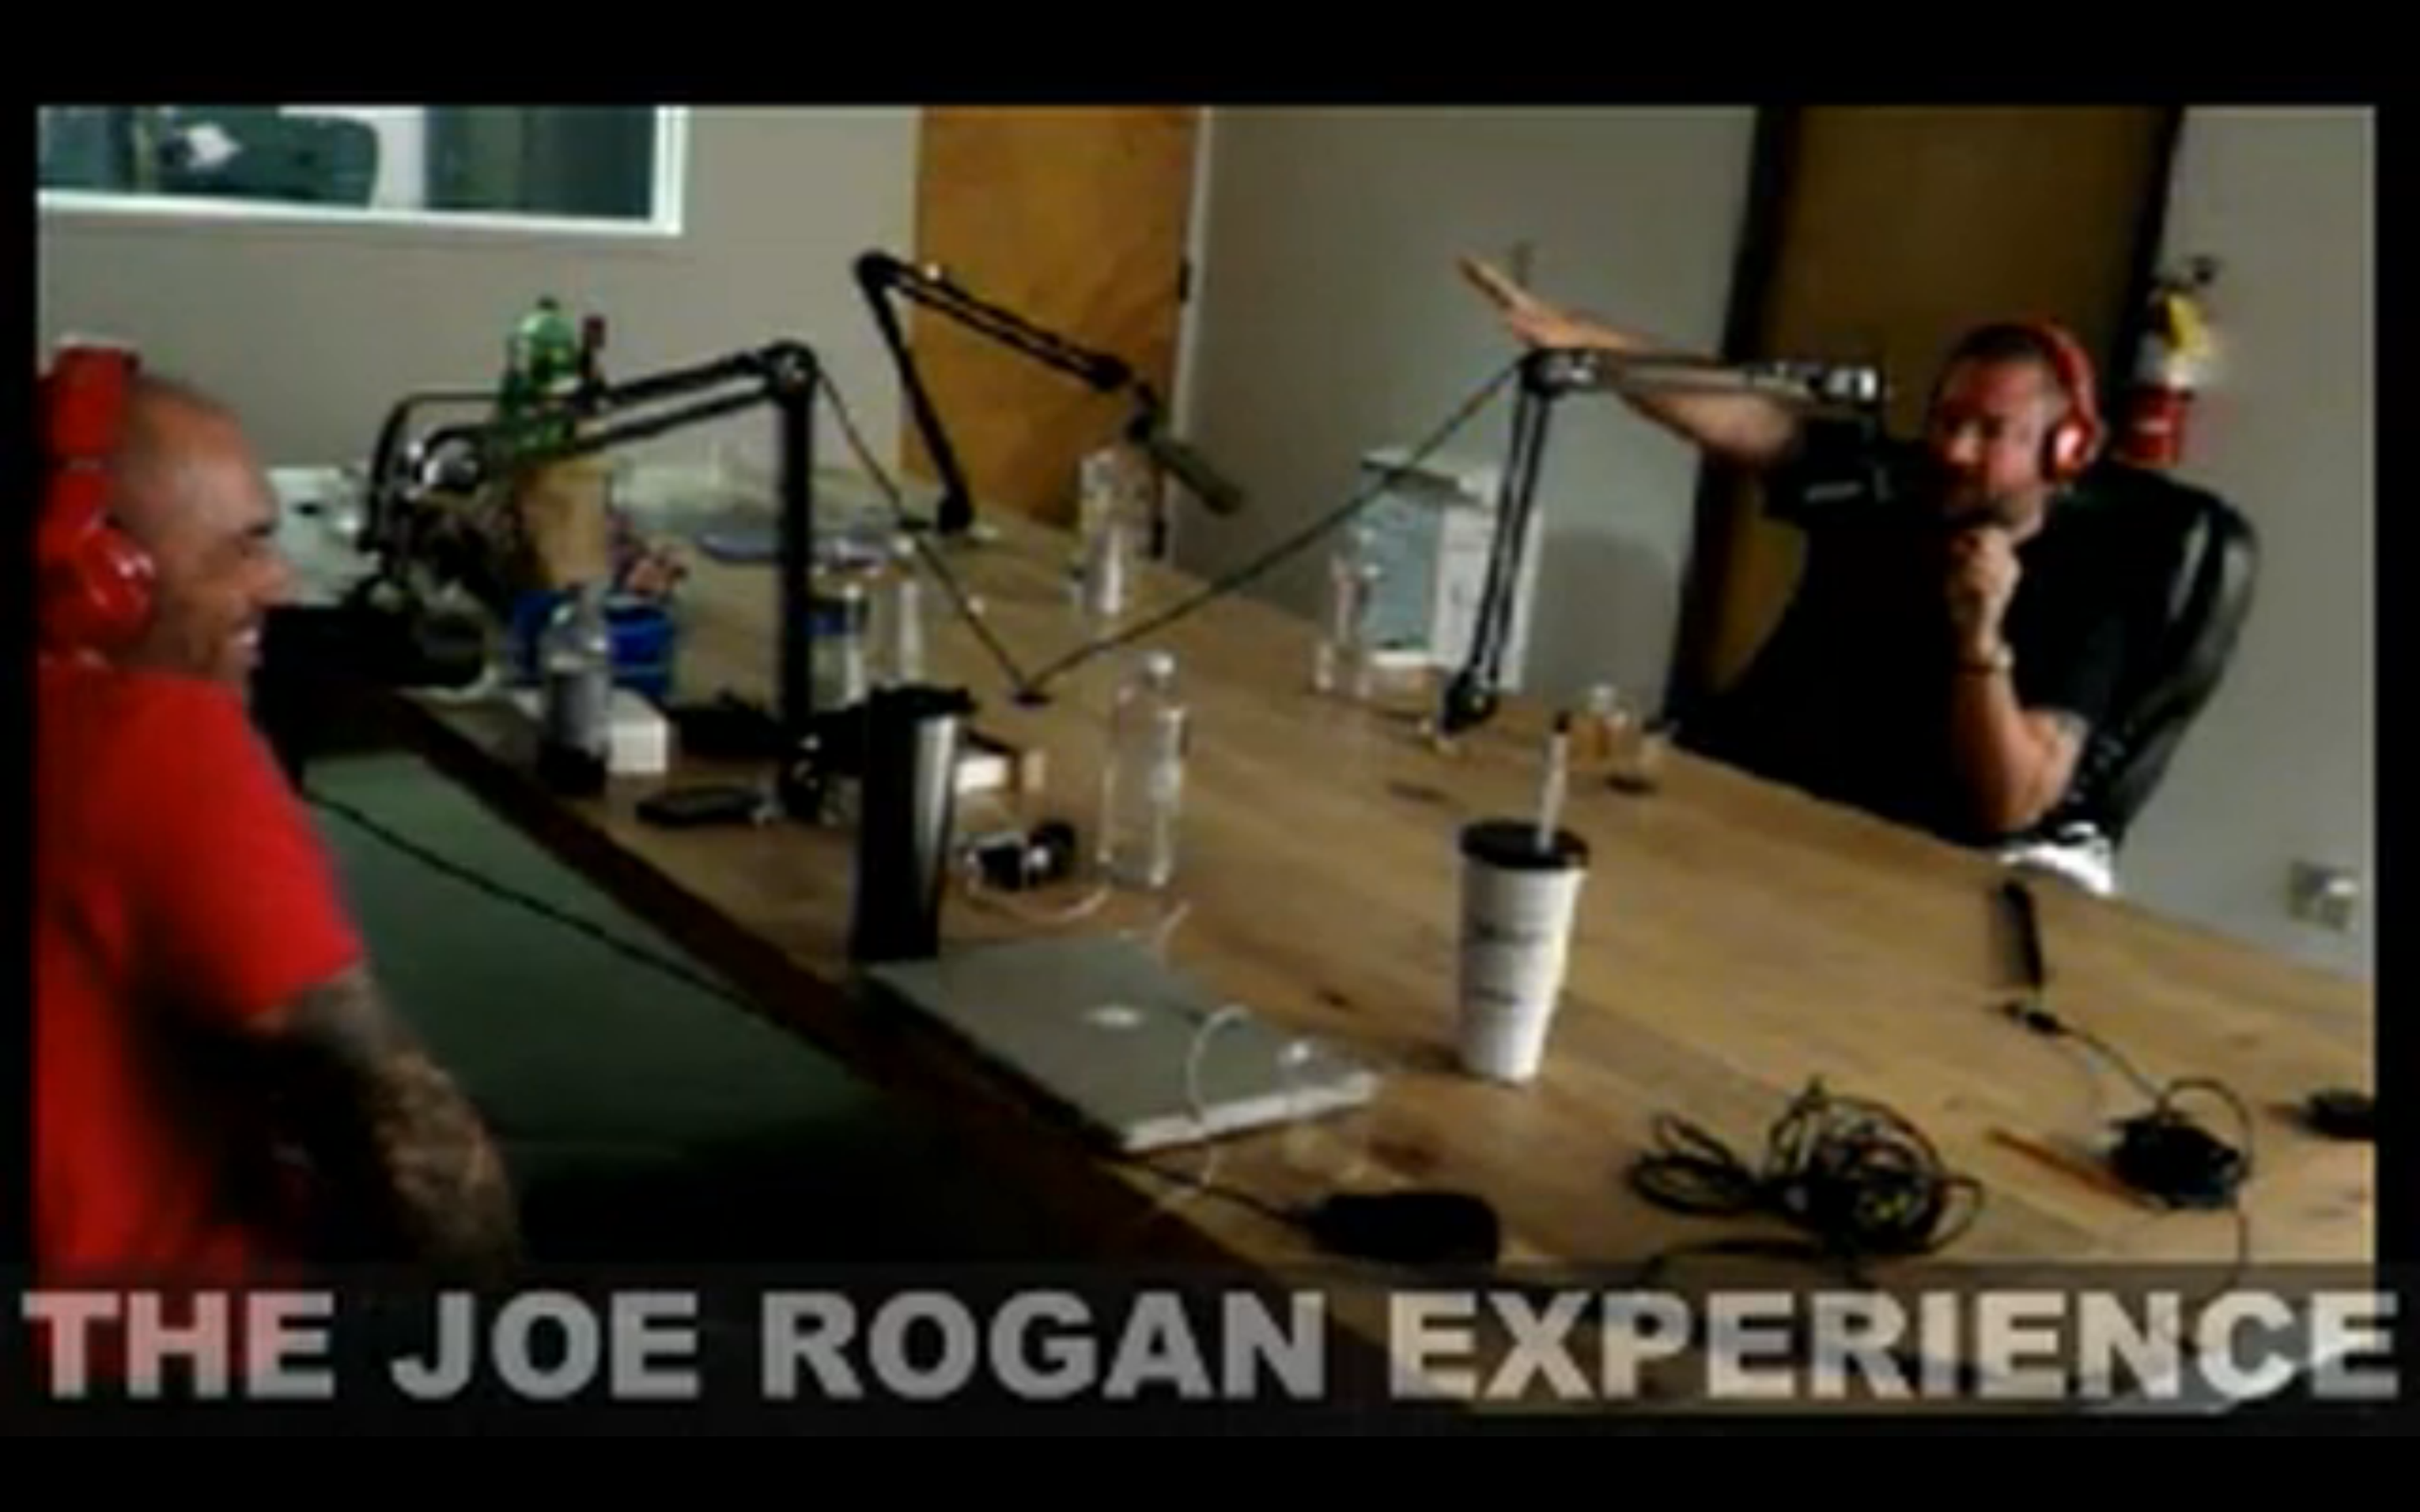 The Joe Rogan Experience #289 - Shane Smith, Brian Redban